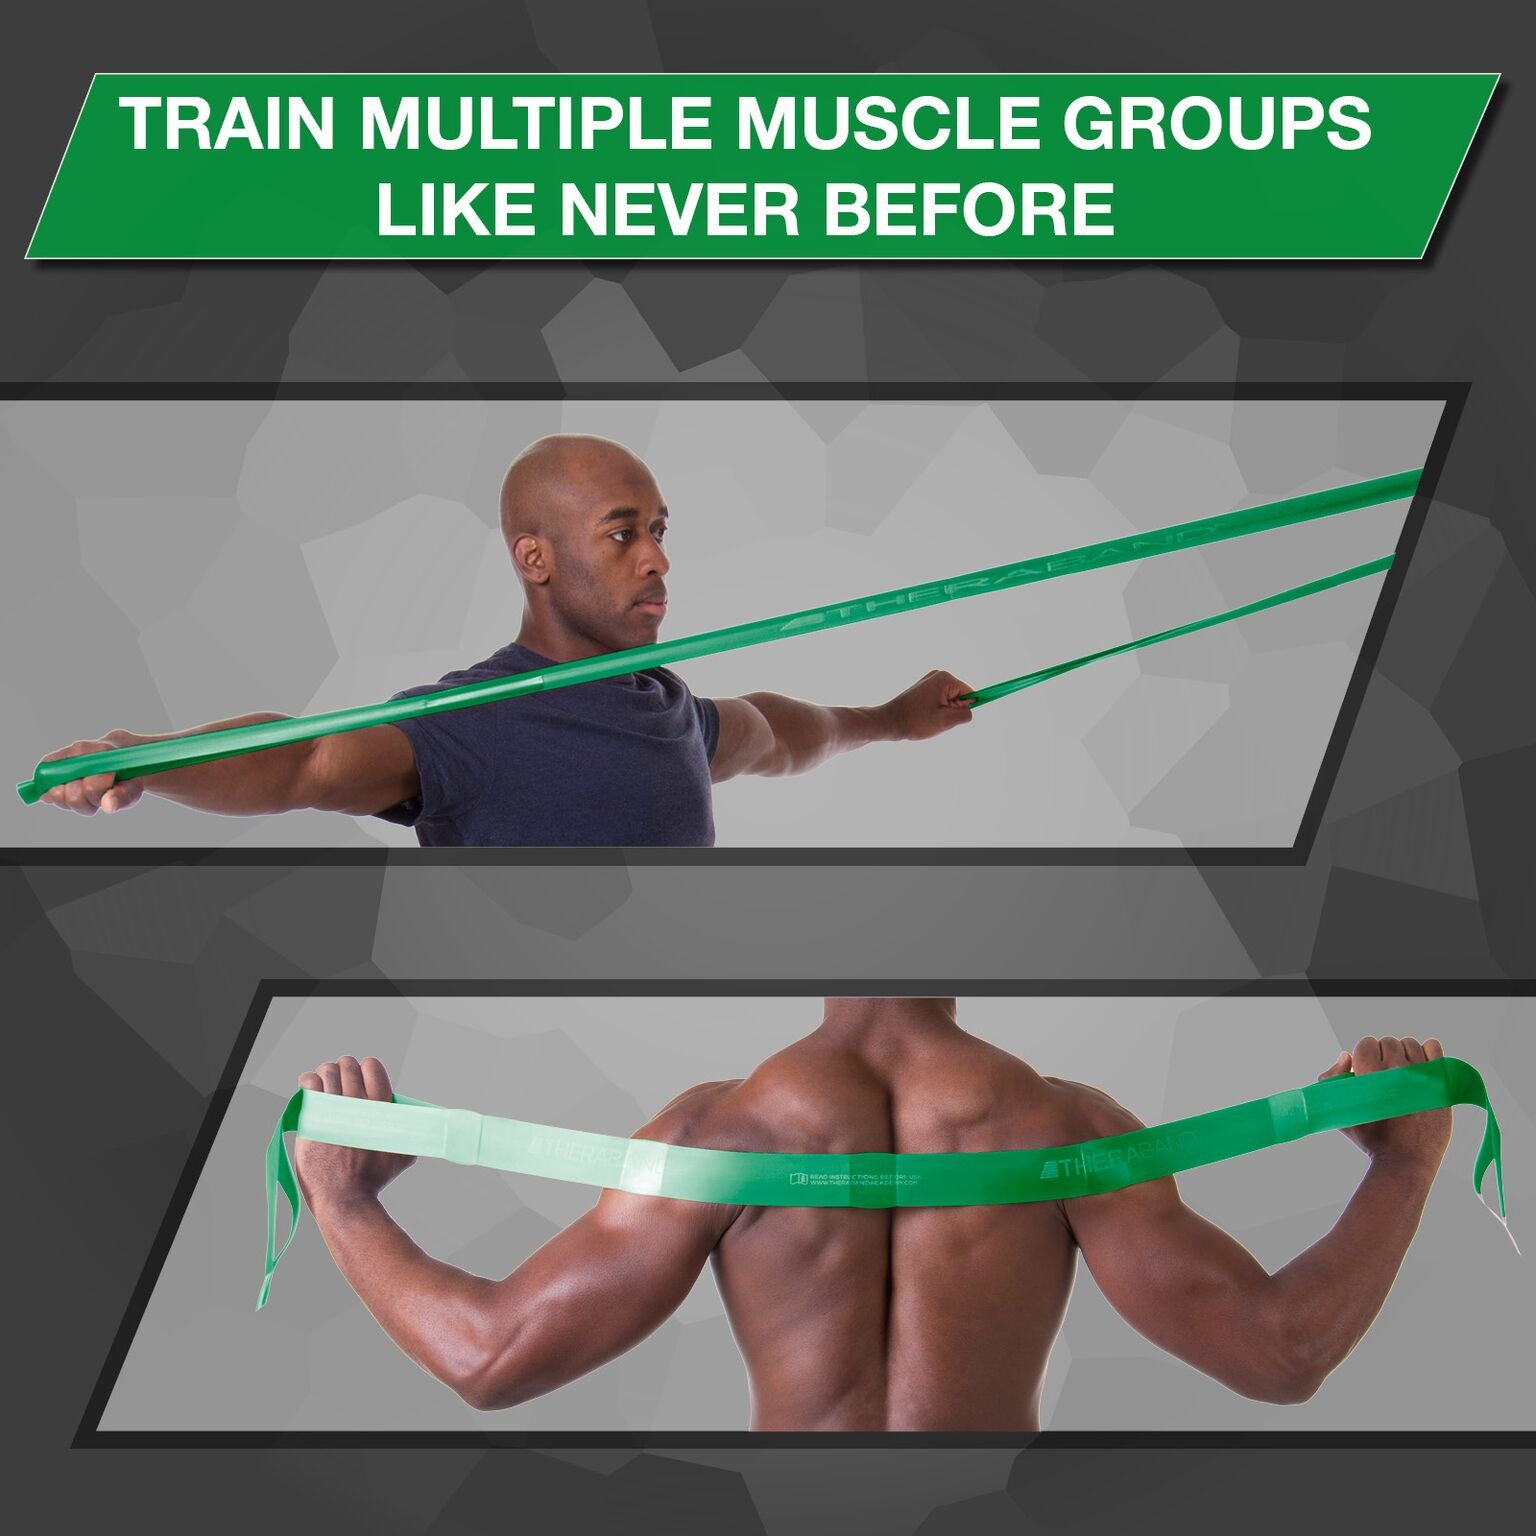 TheraBand CLX Resistance Band with Loops, Fitness Band for Home Exercise and Full Body Workouts, Portable Gym Equipment, Gift for Athletes, Individual 5 Foot Band, Green, Heavy, Intermediate Level 1 by TheraBand (Image #3)